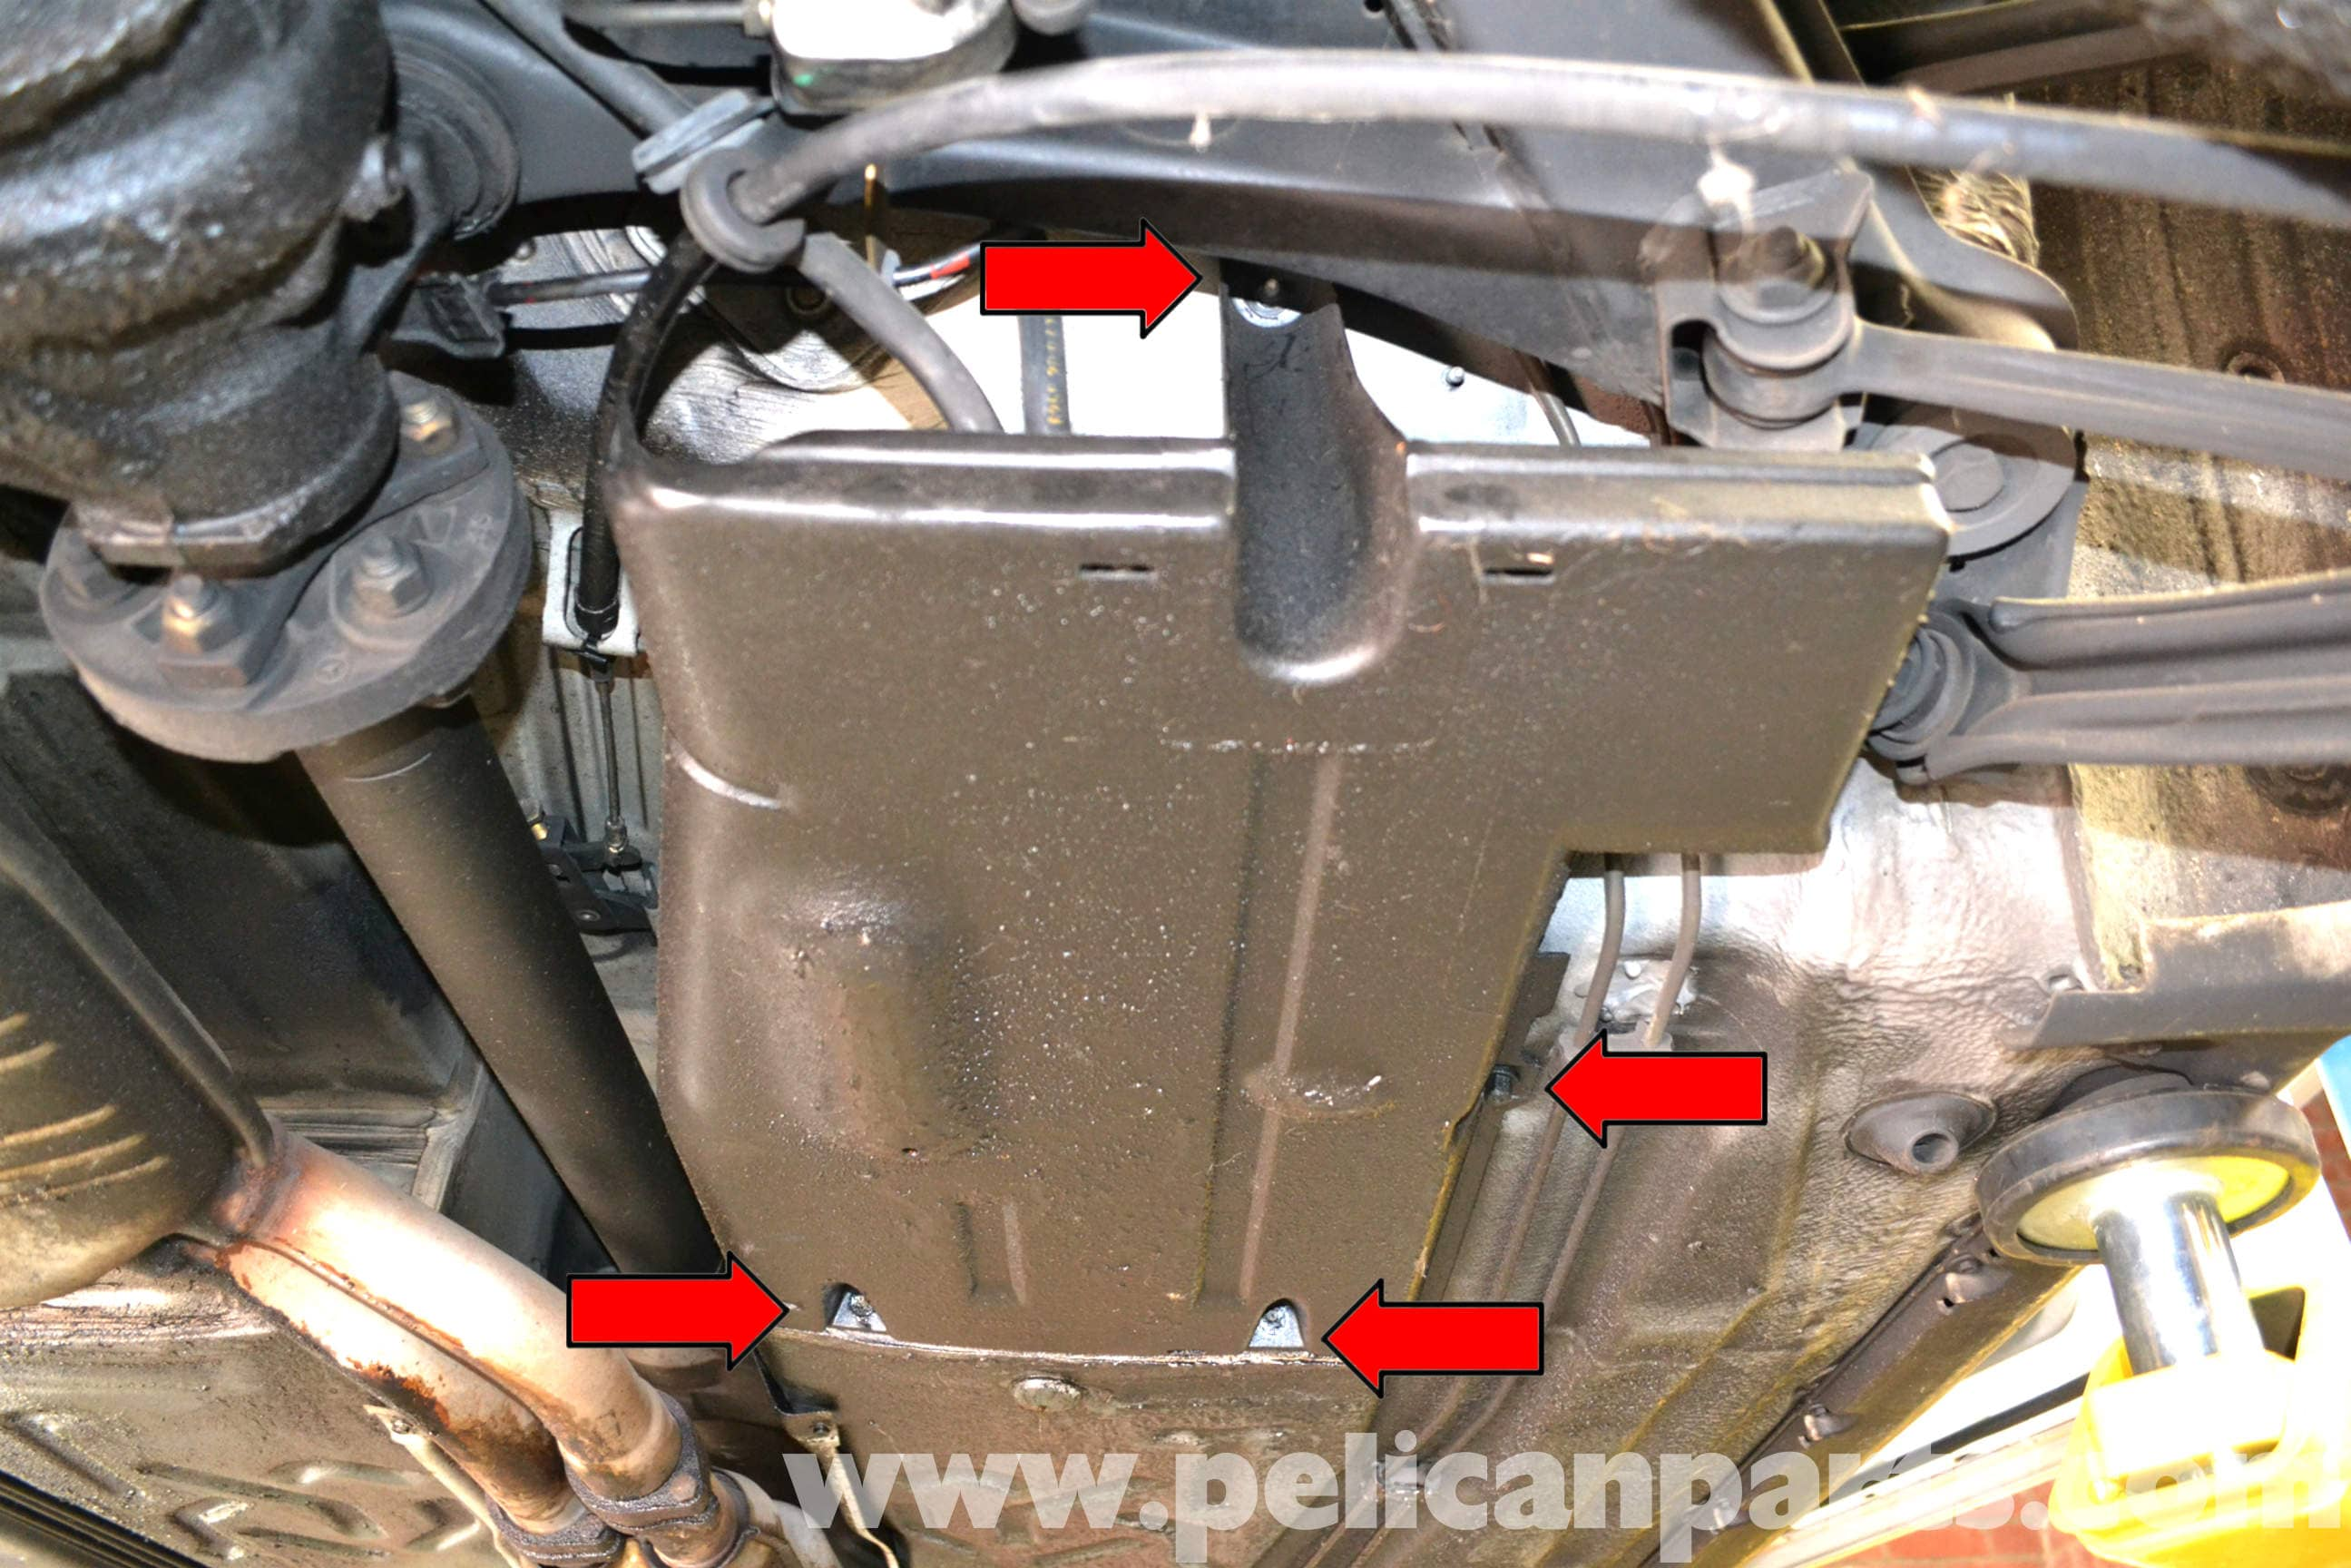 Mercedes Benz W124 Fuel Pump Replacement 1986 1995 E Class Volvo 960 1997 Filter Location Large Image Extra